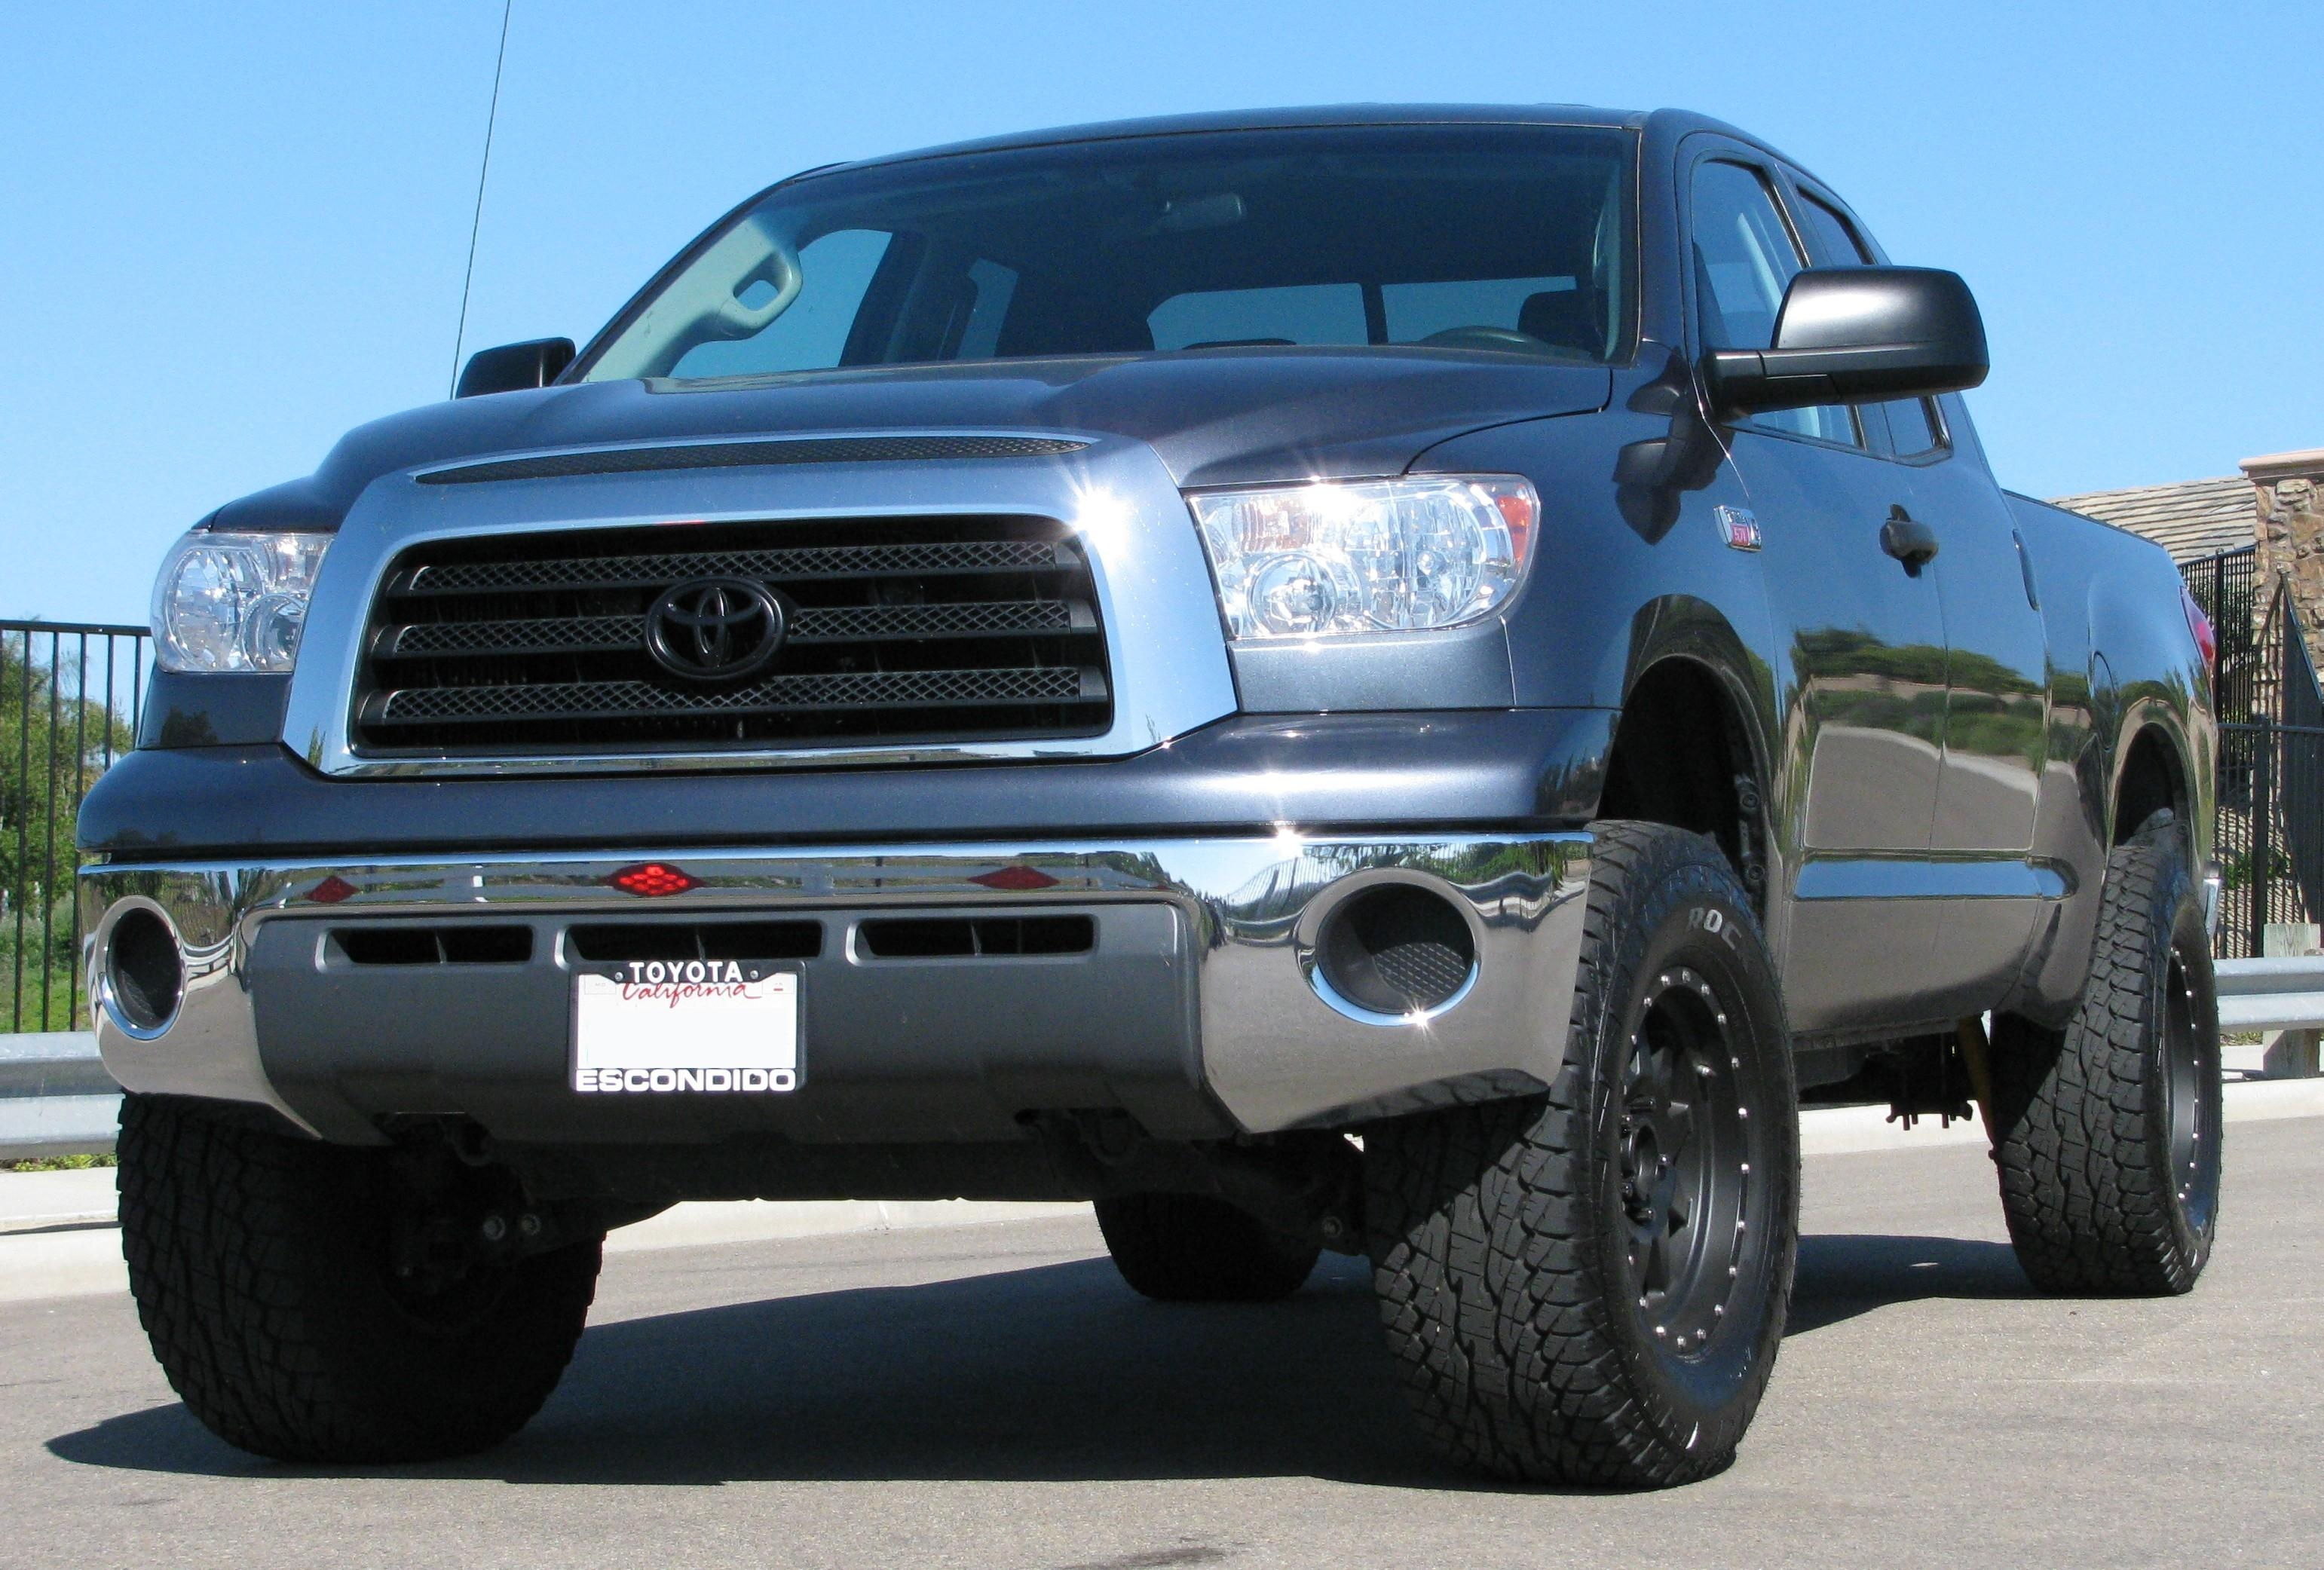 pitmonster 2008 toyota tundra double cab specs photos modification info at cardomain. Black Bedroom Furniture Sets. Home Design Ideas